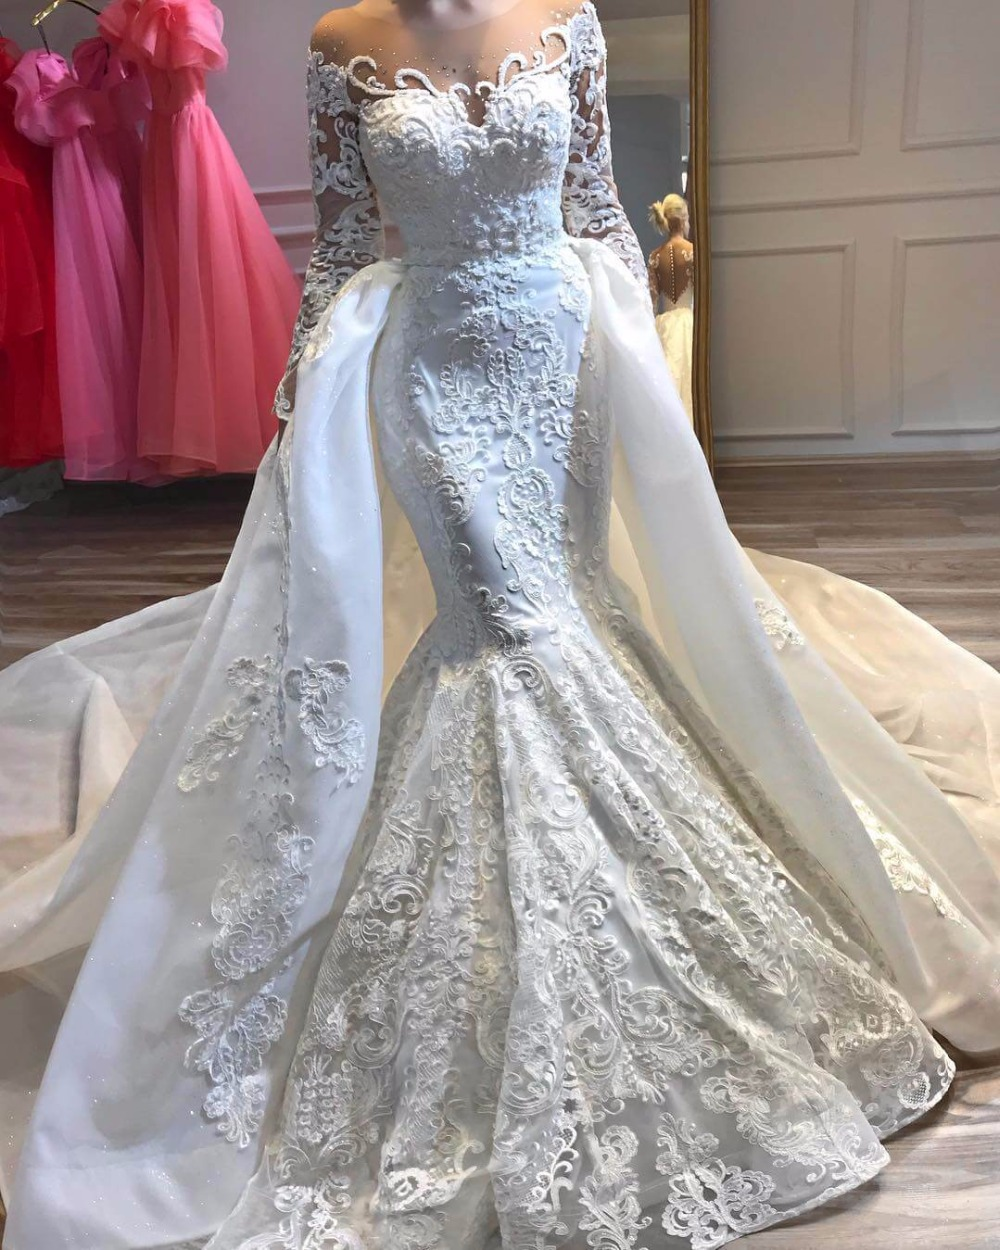 Robe De Mariee 2020 Luxury Lace Mermaid Wedding Dress With Detachable Skirt Illusion Long Sleeve Wedding Gowns Plus Size